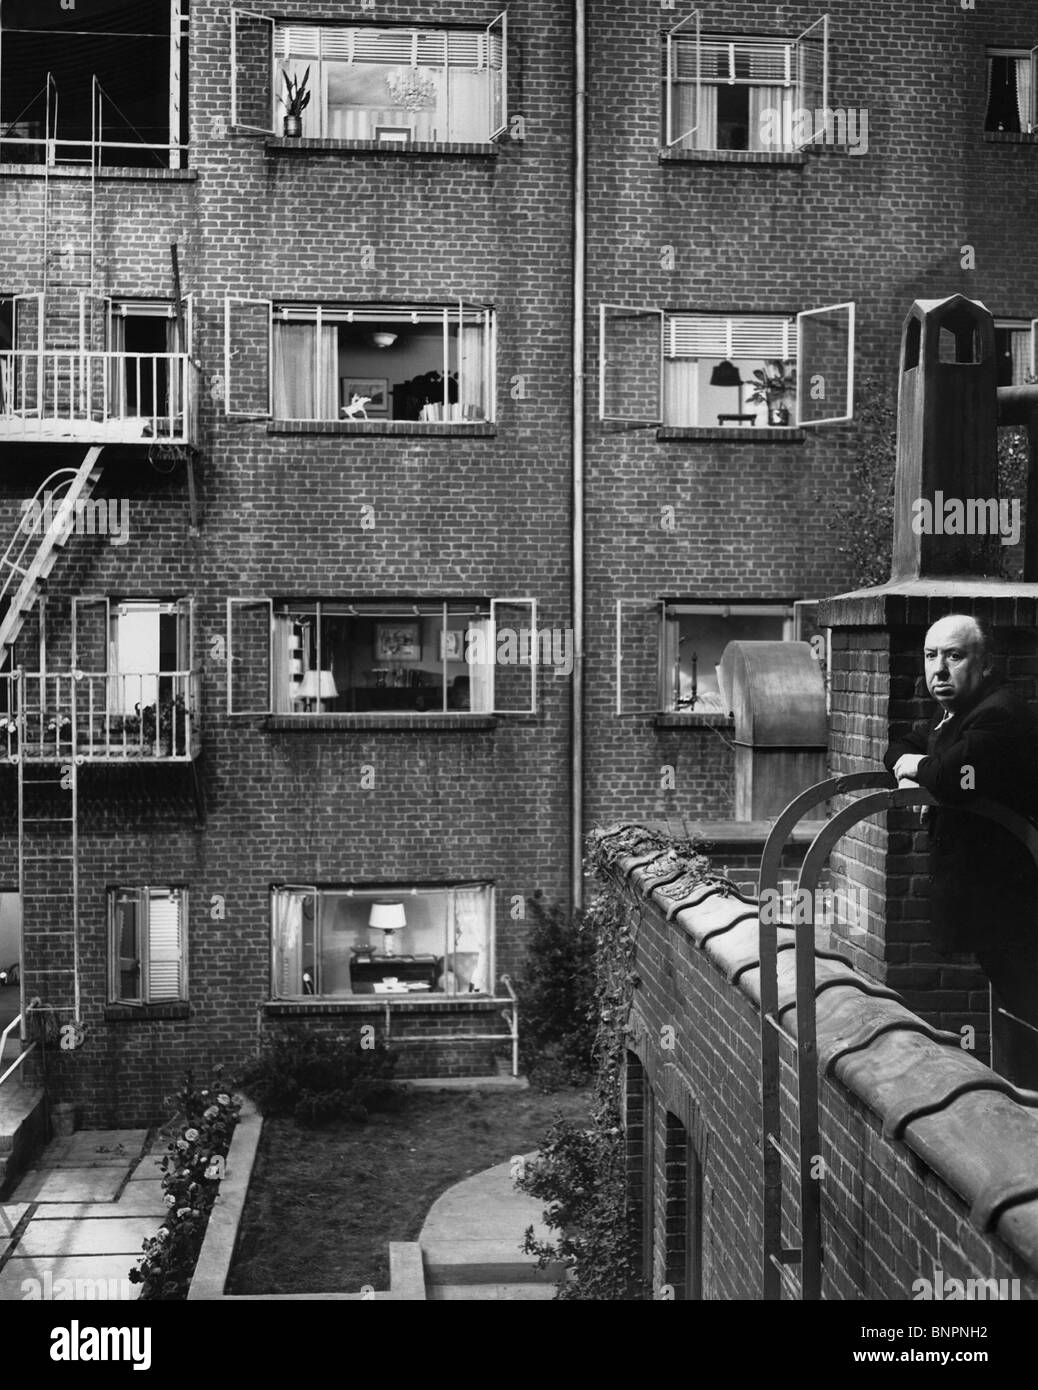 ALFRED HITCHCOCK REAR WINDOW; (1954) - Stock Image